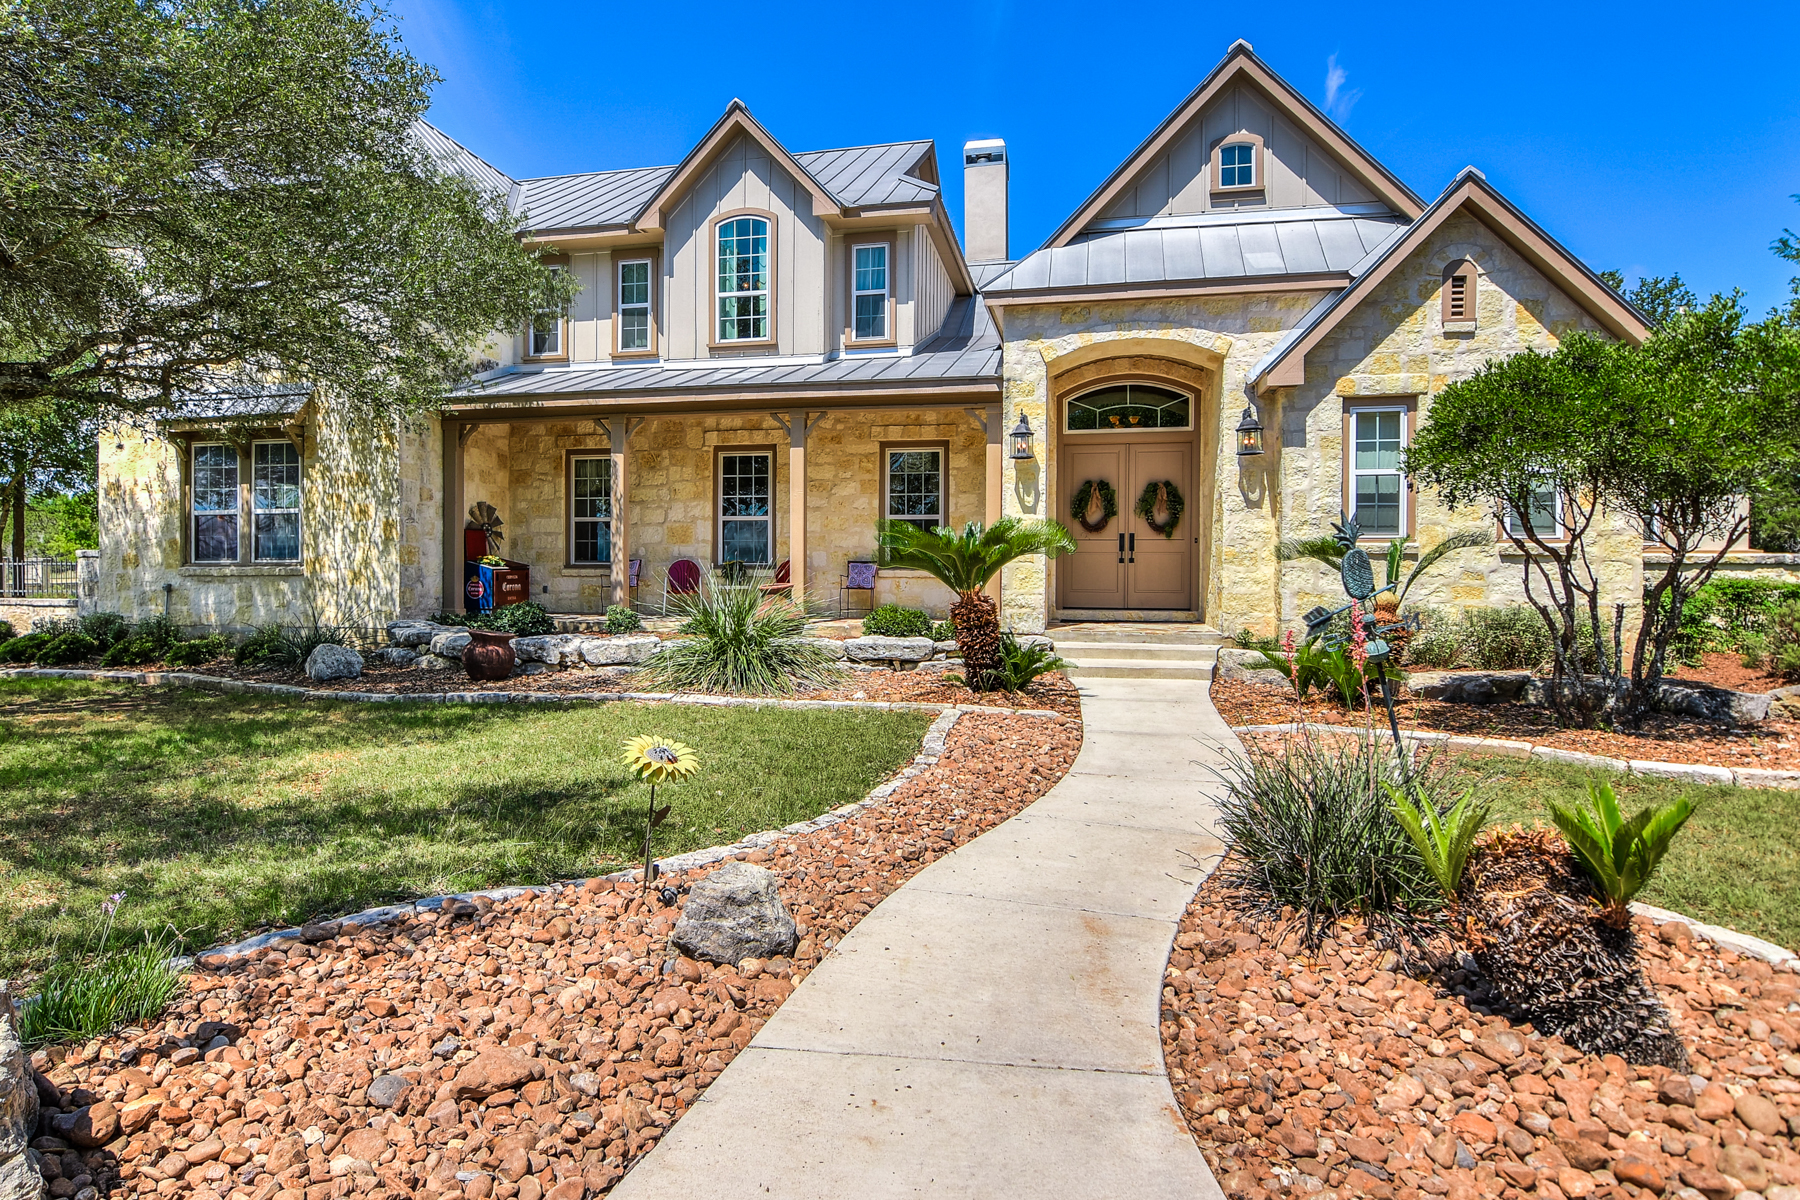 Single Family Home for Sale at Beautiful Custom Home in Cordillera Ranch 106 Sage Brush Boerne, Texas 78006 United States